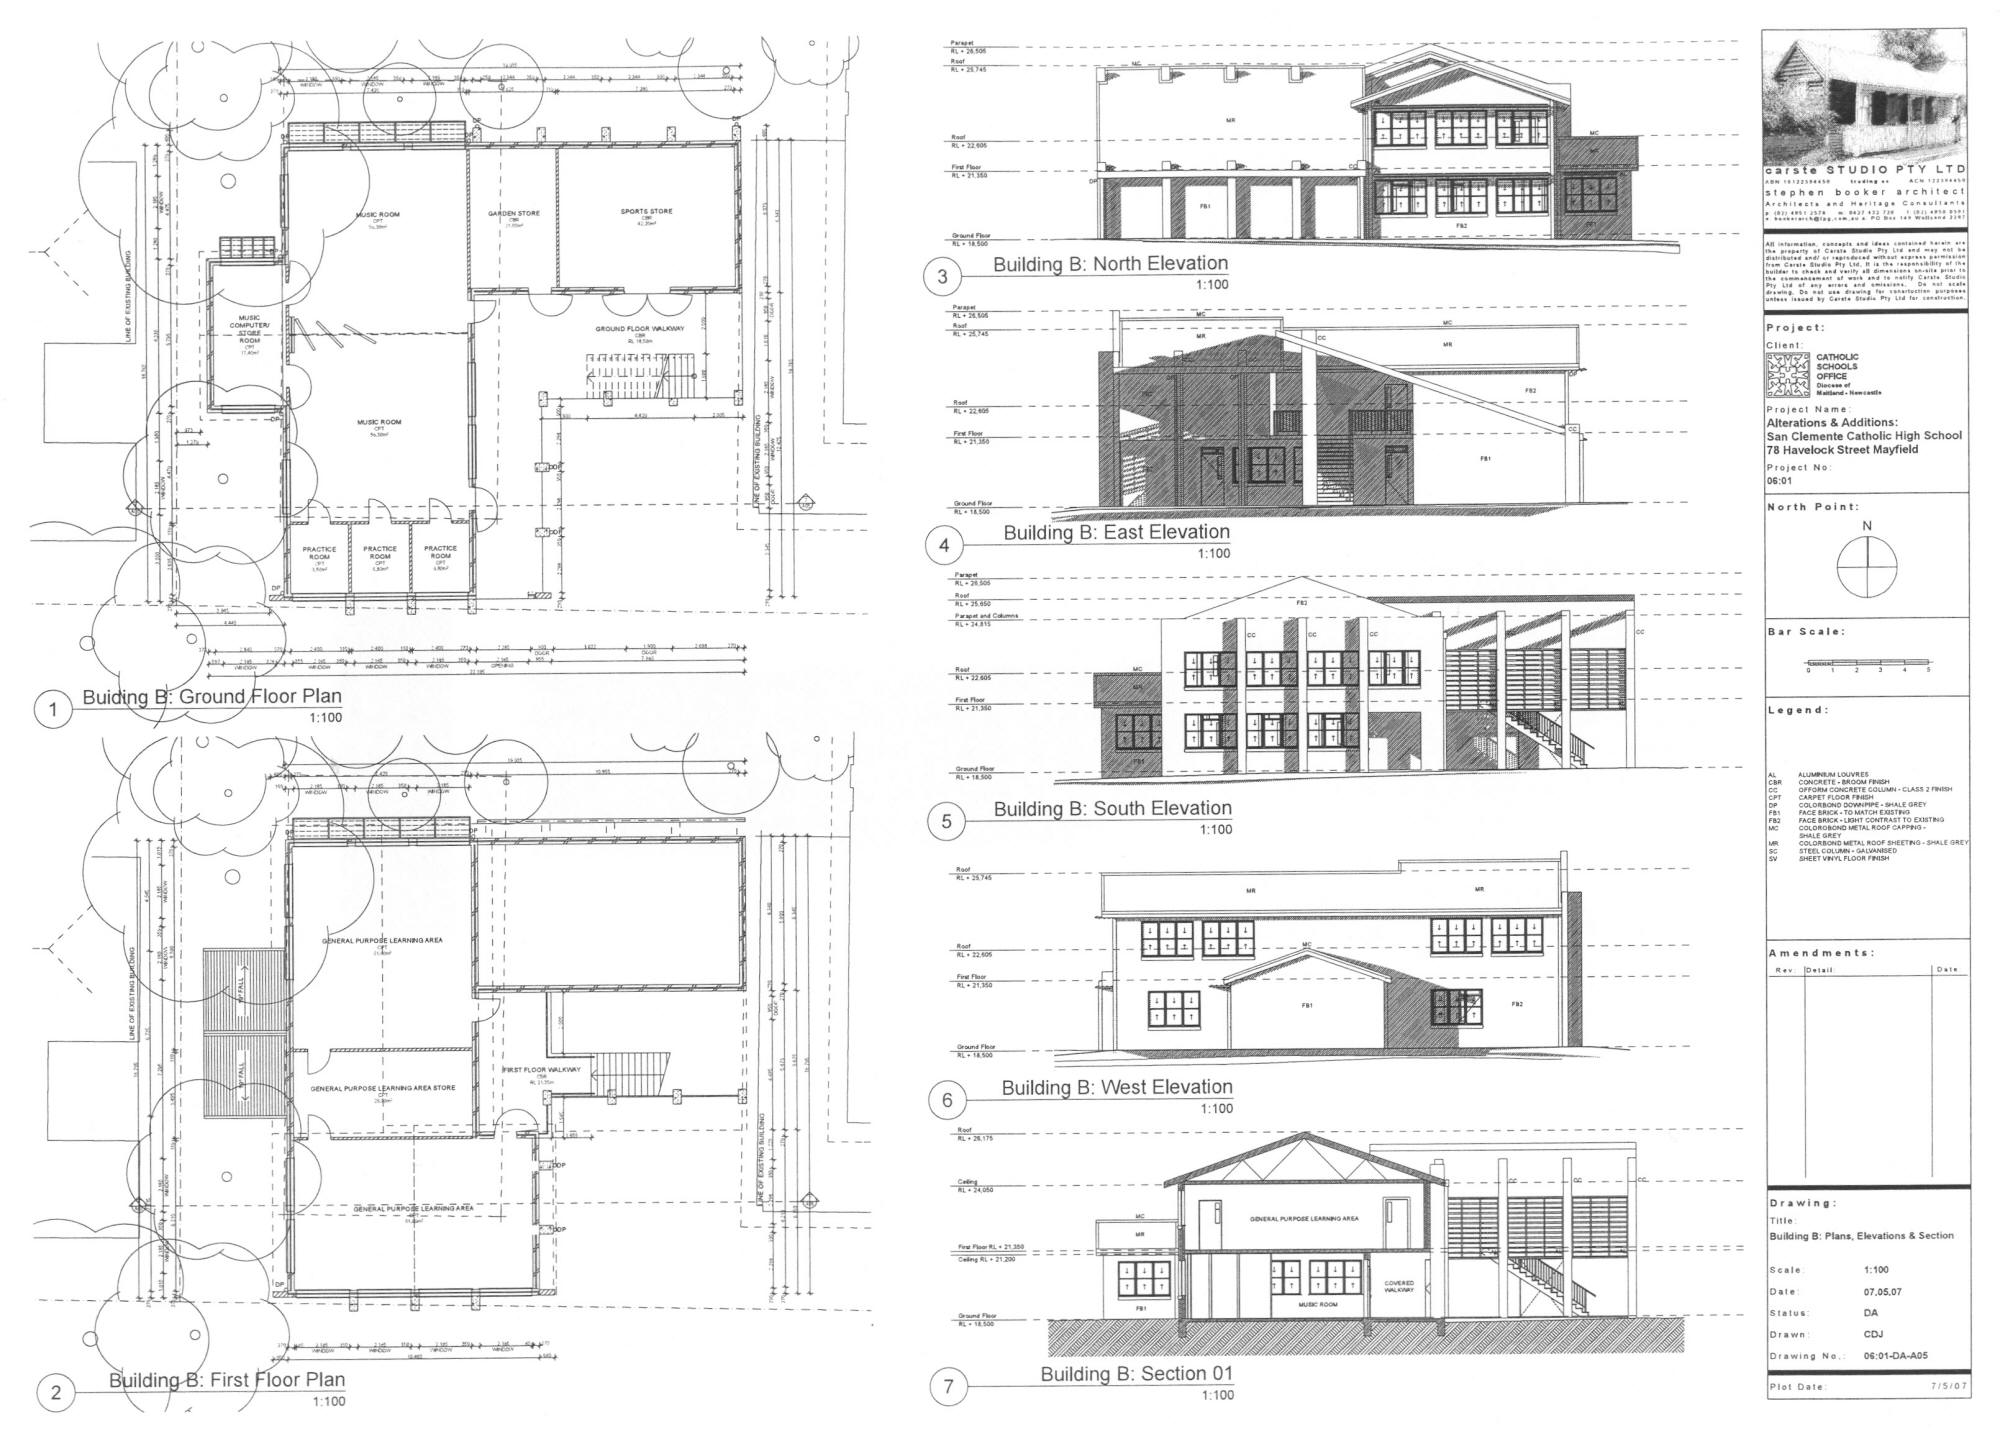 Planned extension san clemente high school mayfield school building plan section